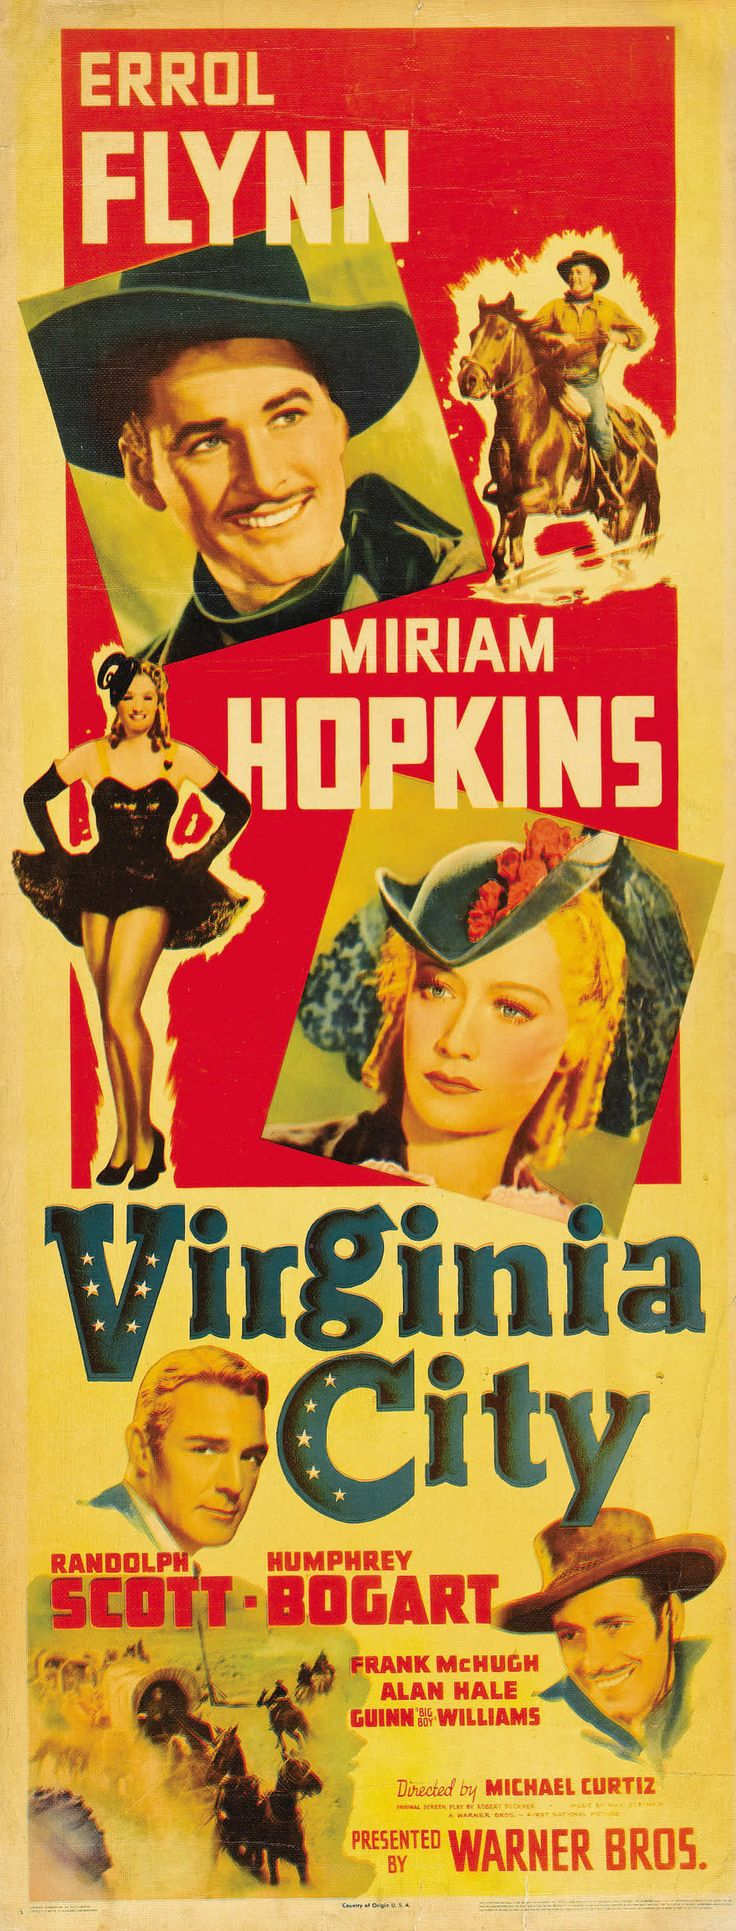 Movie poster, Virginia City 1940 starring Errol Flynn, Humphrey Bogart and Miriam Hopkins